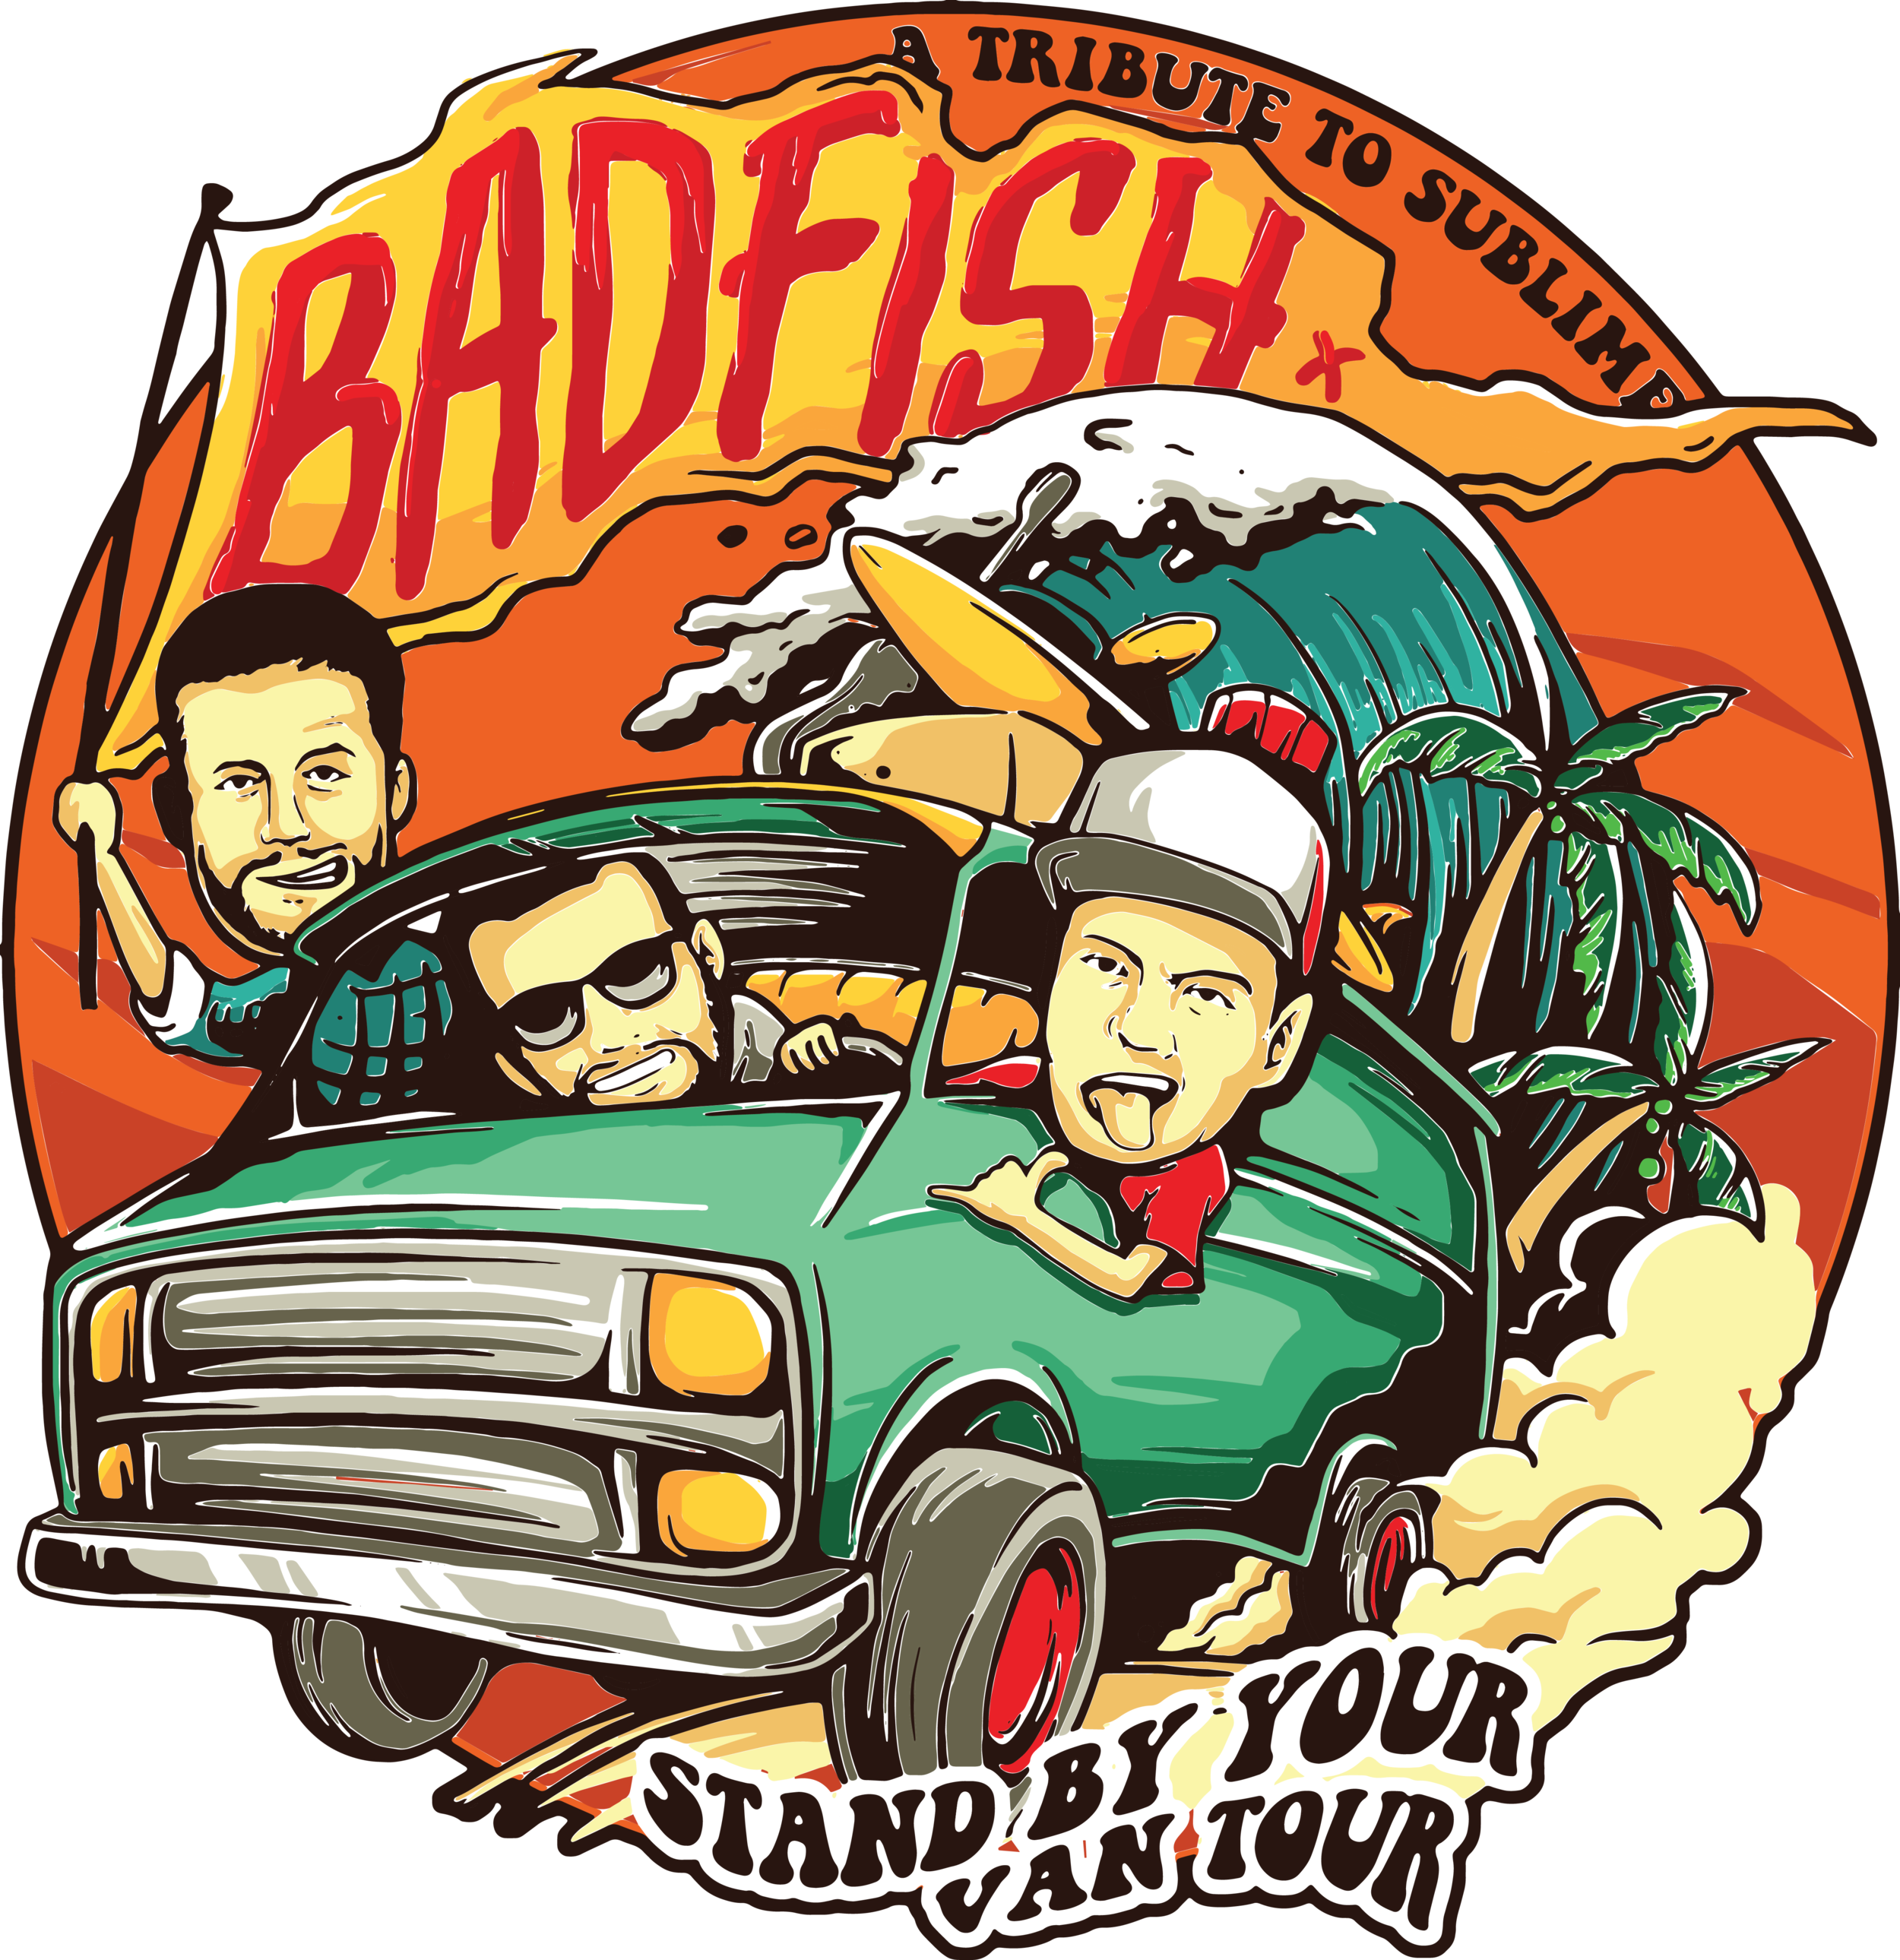 Badfish Stand By Your Van Tour Graphic.png